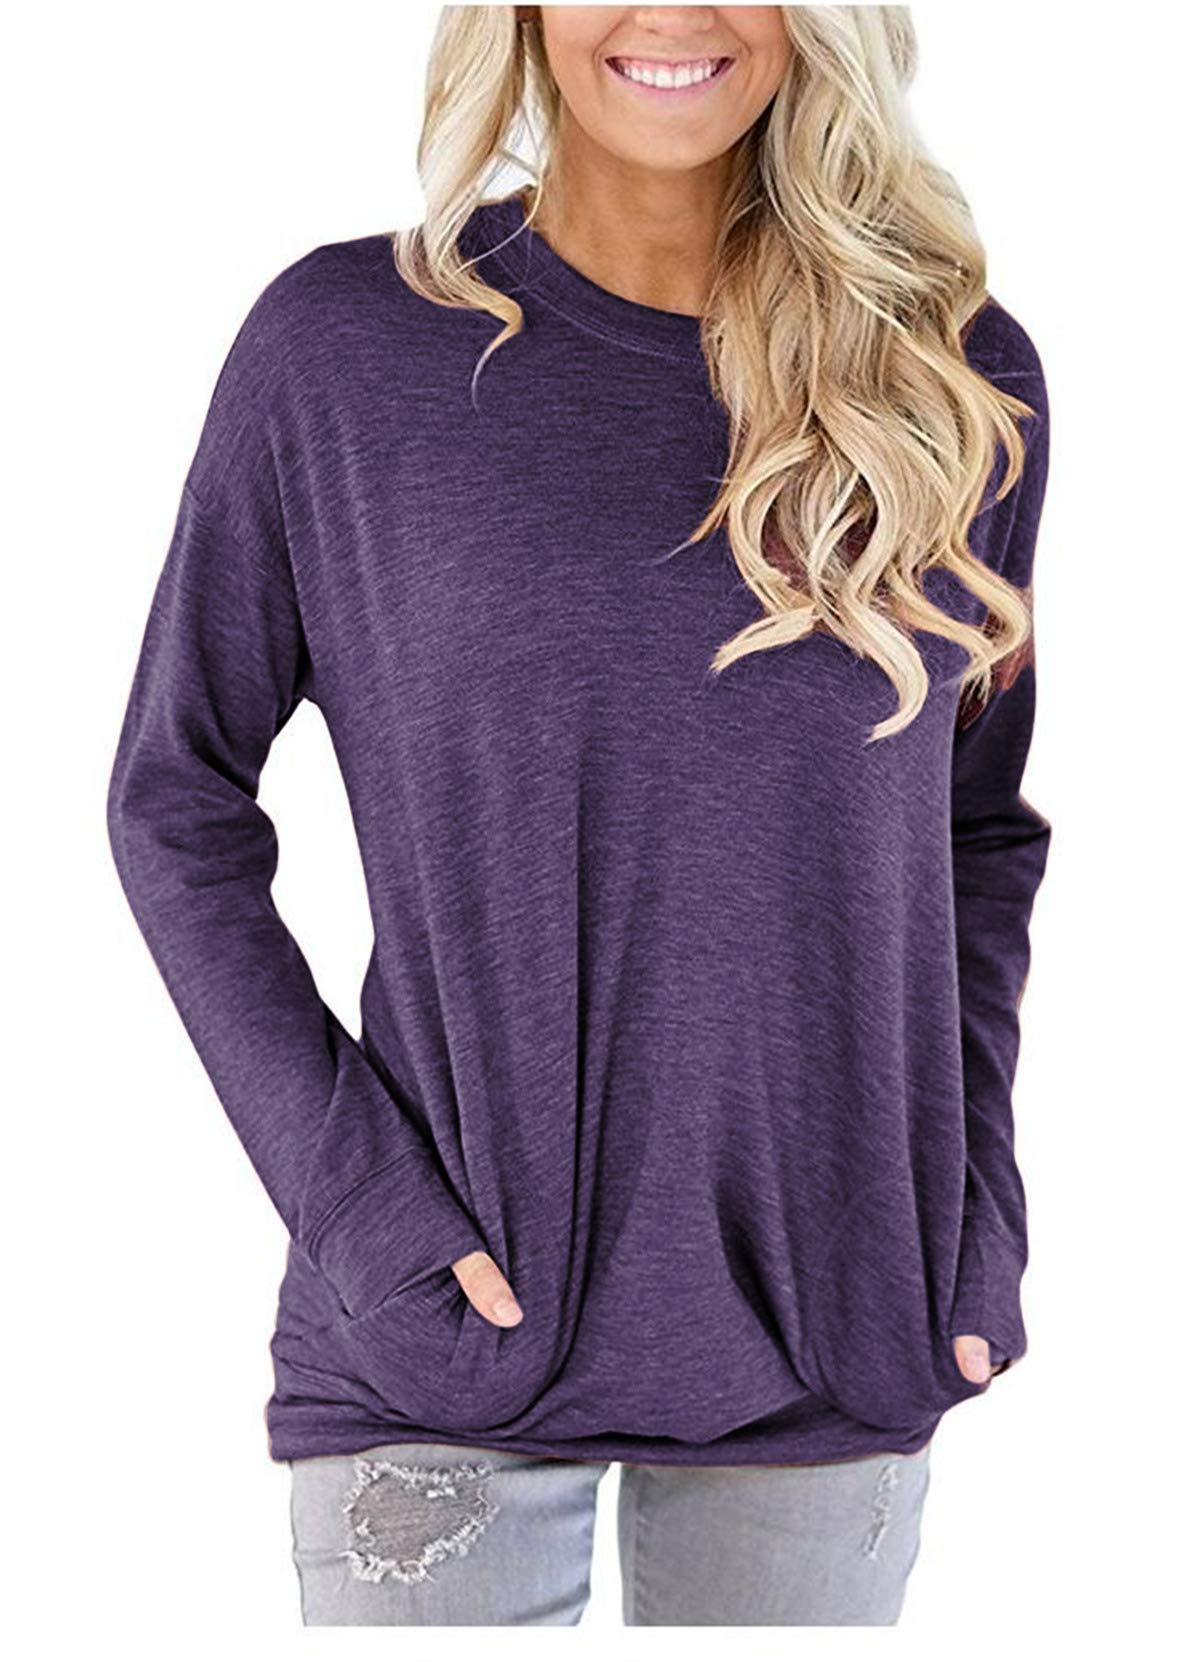 Plus Size Clothing - Pocket Shirts For Women Casual Loose Fit Tunic Top Baggy Comfy Blouse